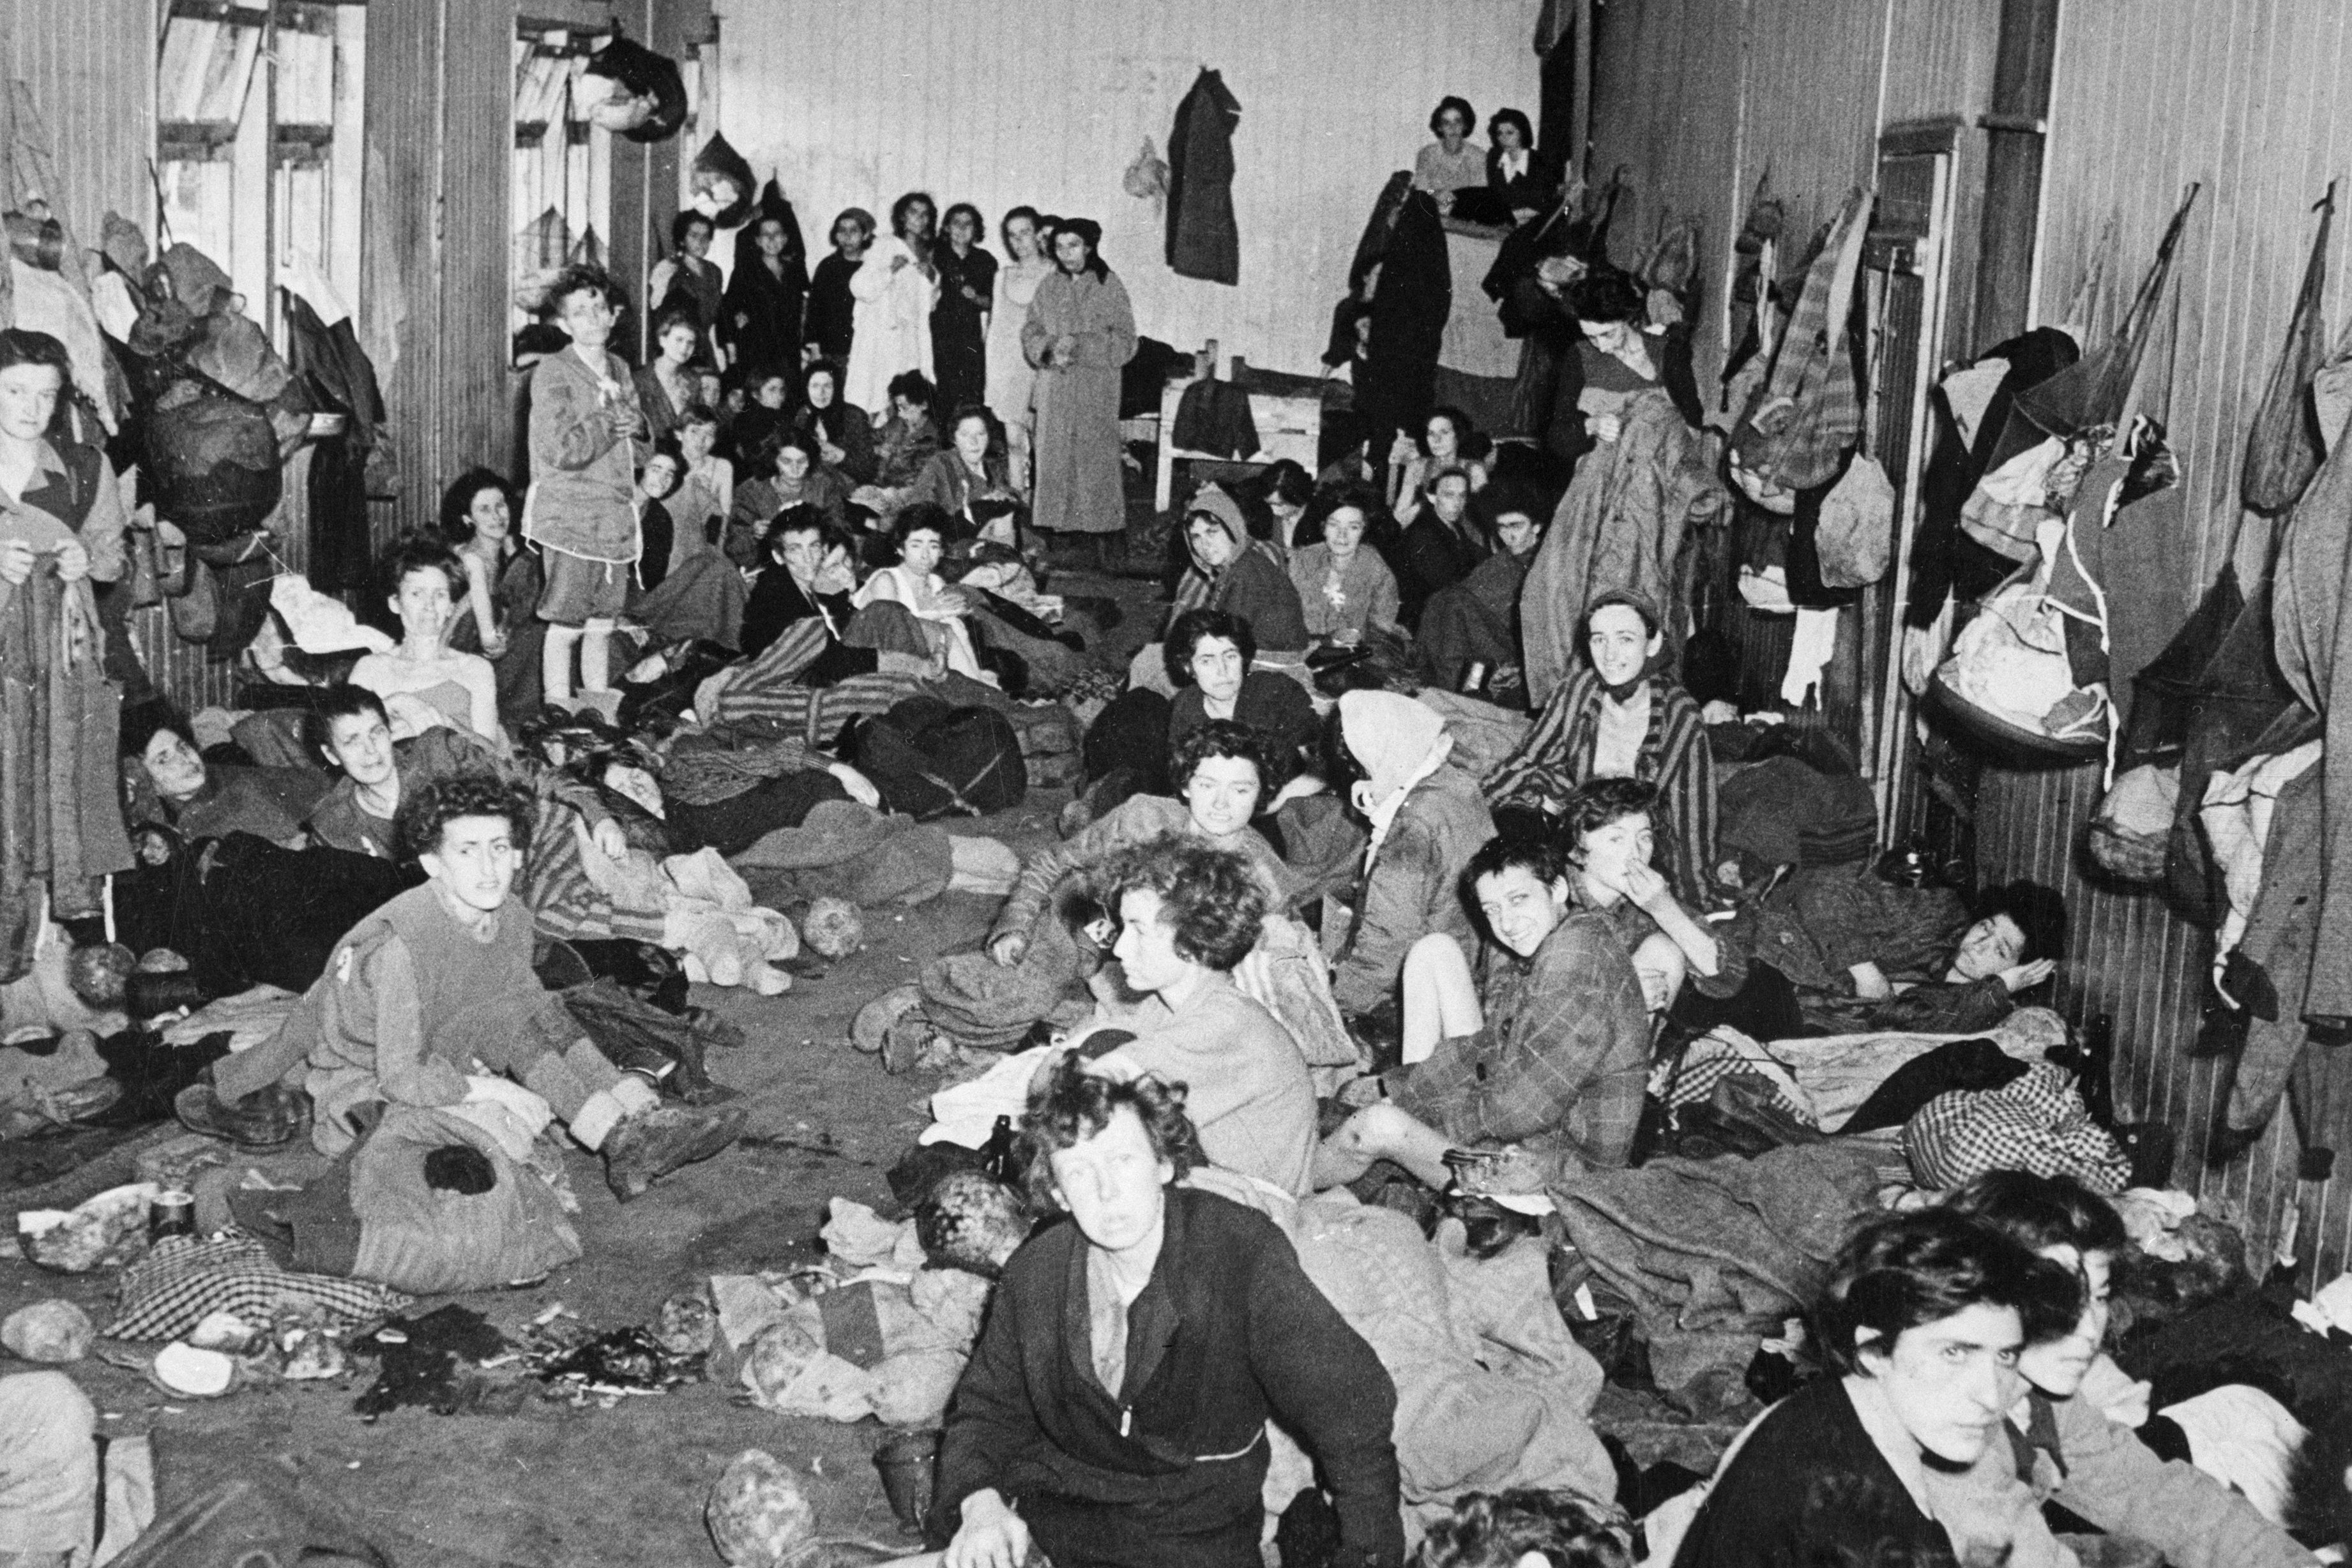 Women And World War Ii Concentration Camps And The Holocaust